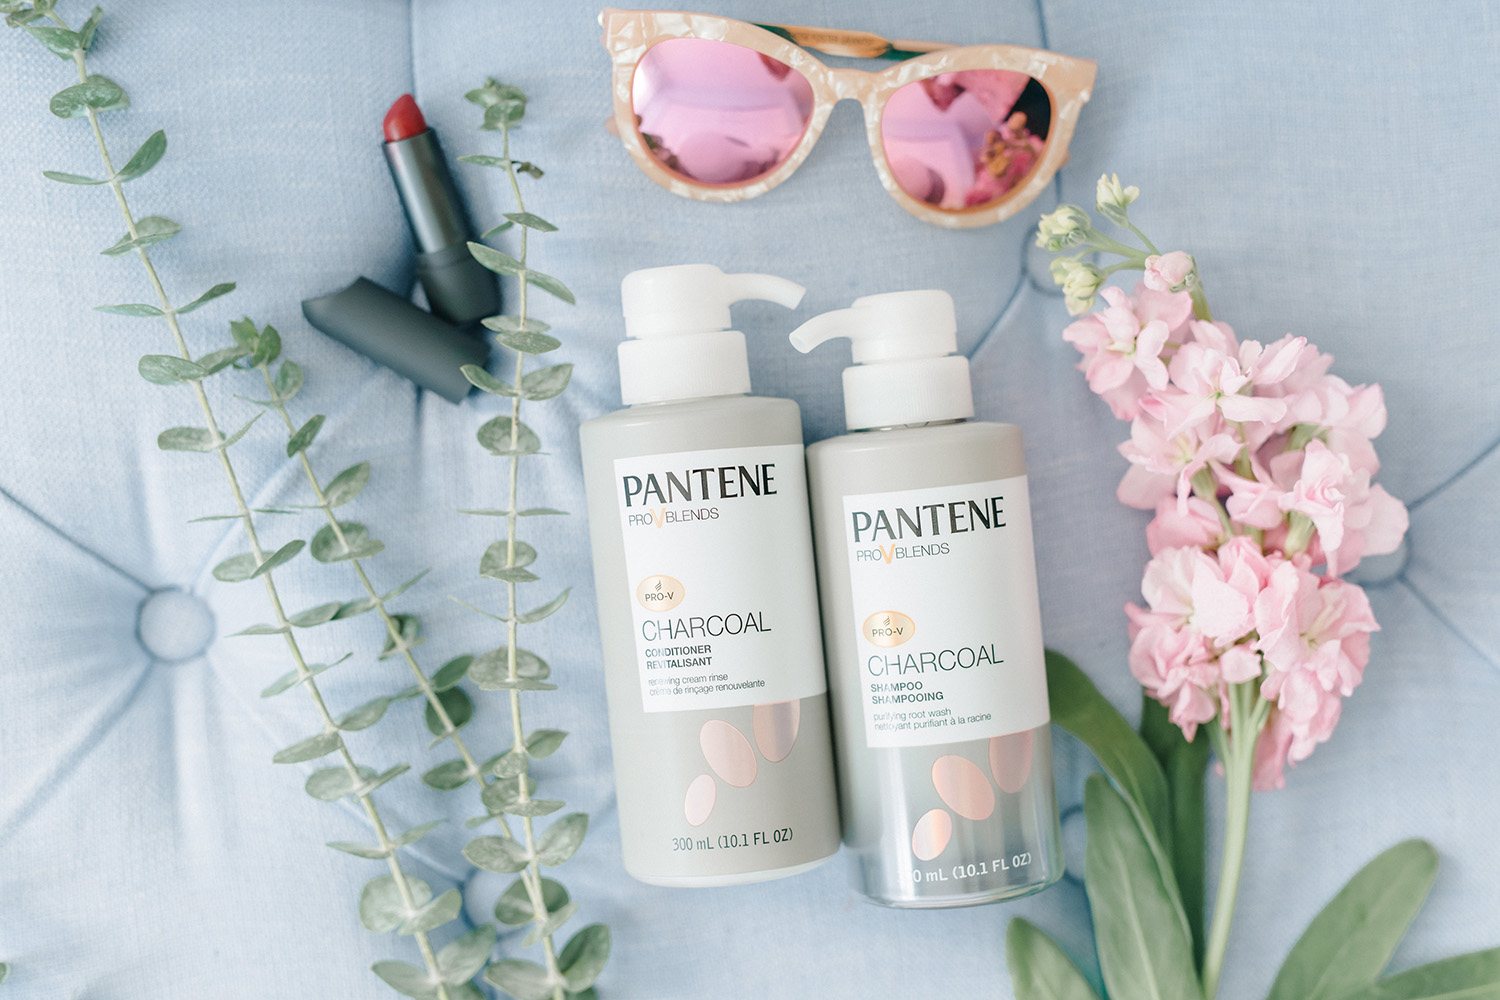 Pantene Charcoal - The Secret to Good Hair Days